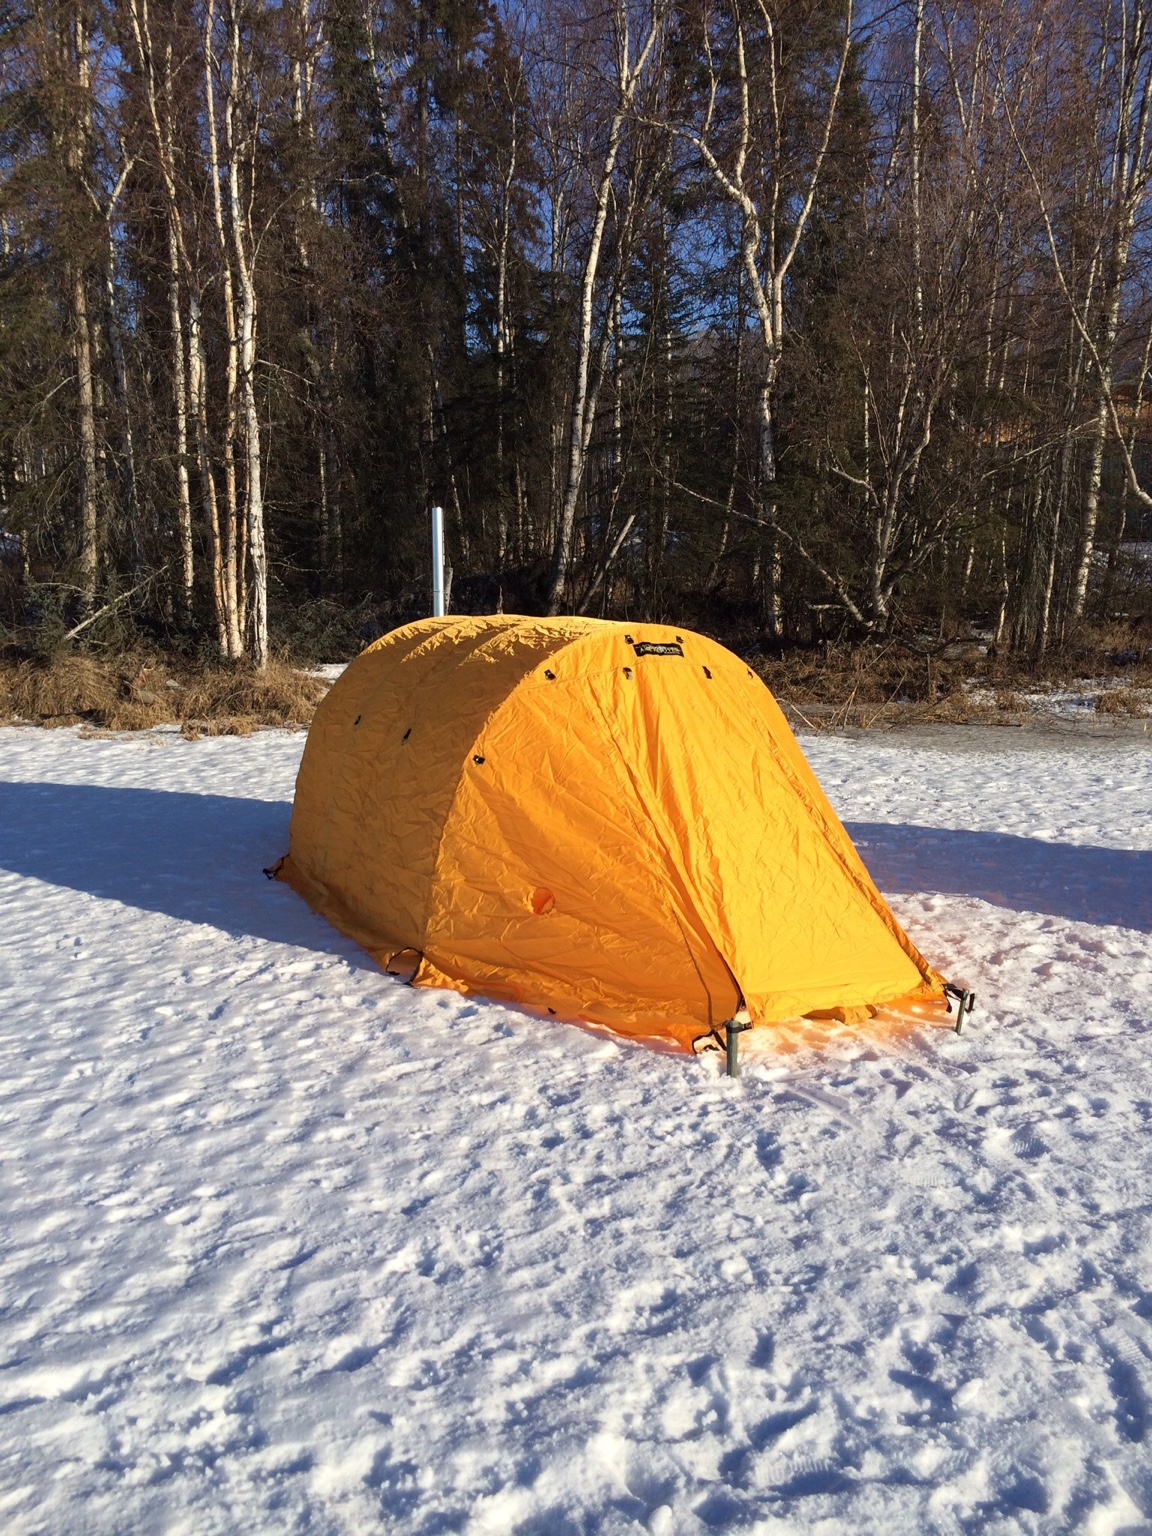 Re Heated Tents & Heated Tents - Page 2 of 4 - Backcountry Pilot